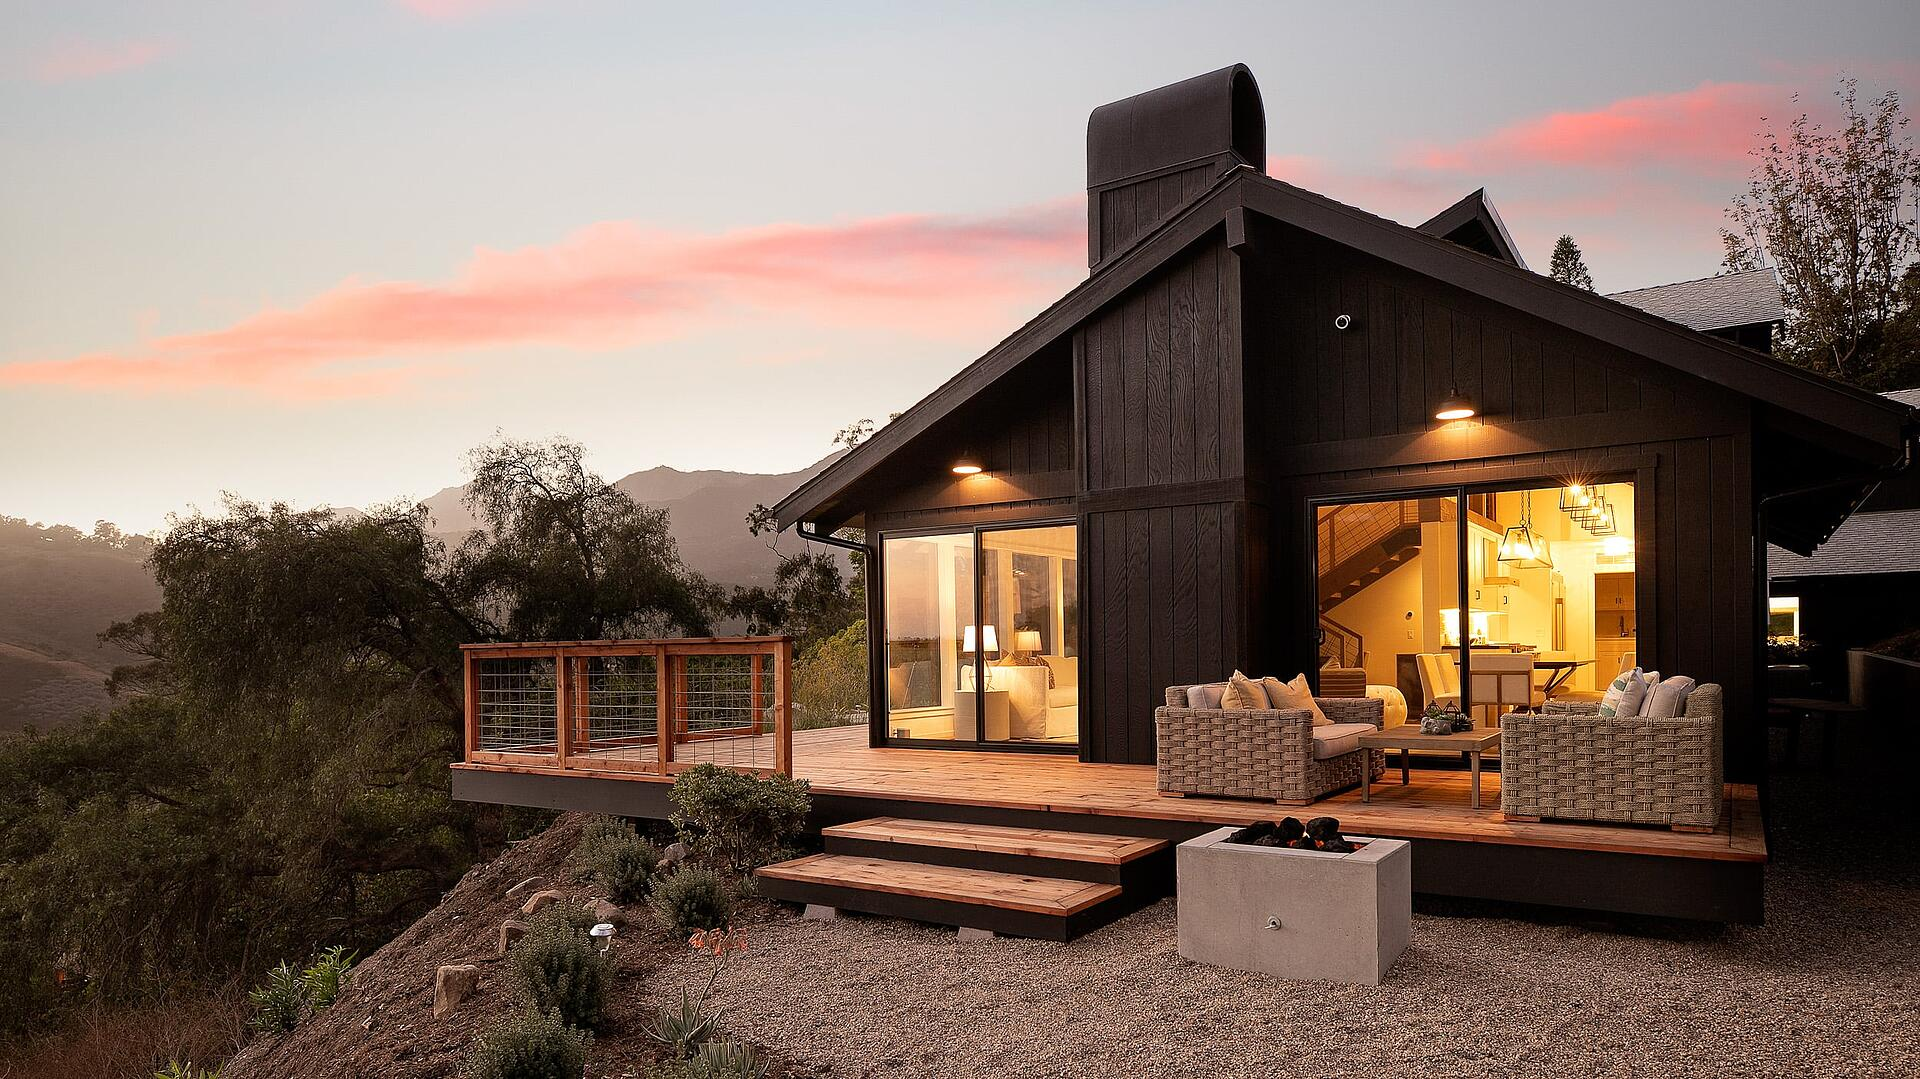 Canyon_House_Hero@2x-Side Facade and mountain view